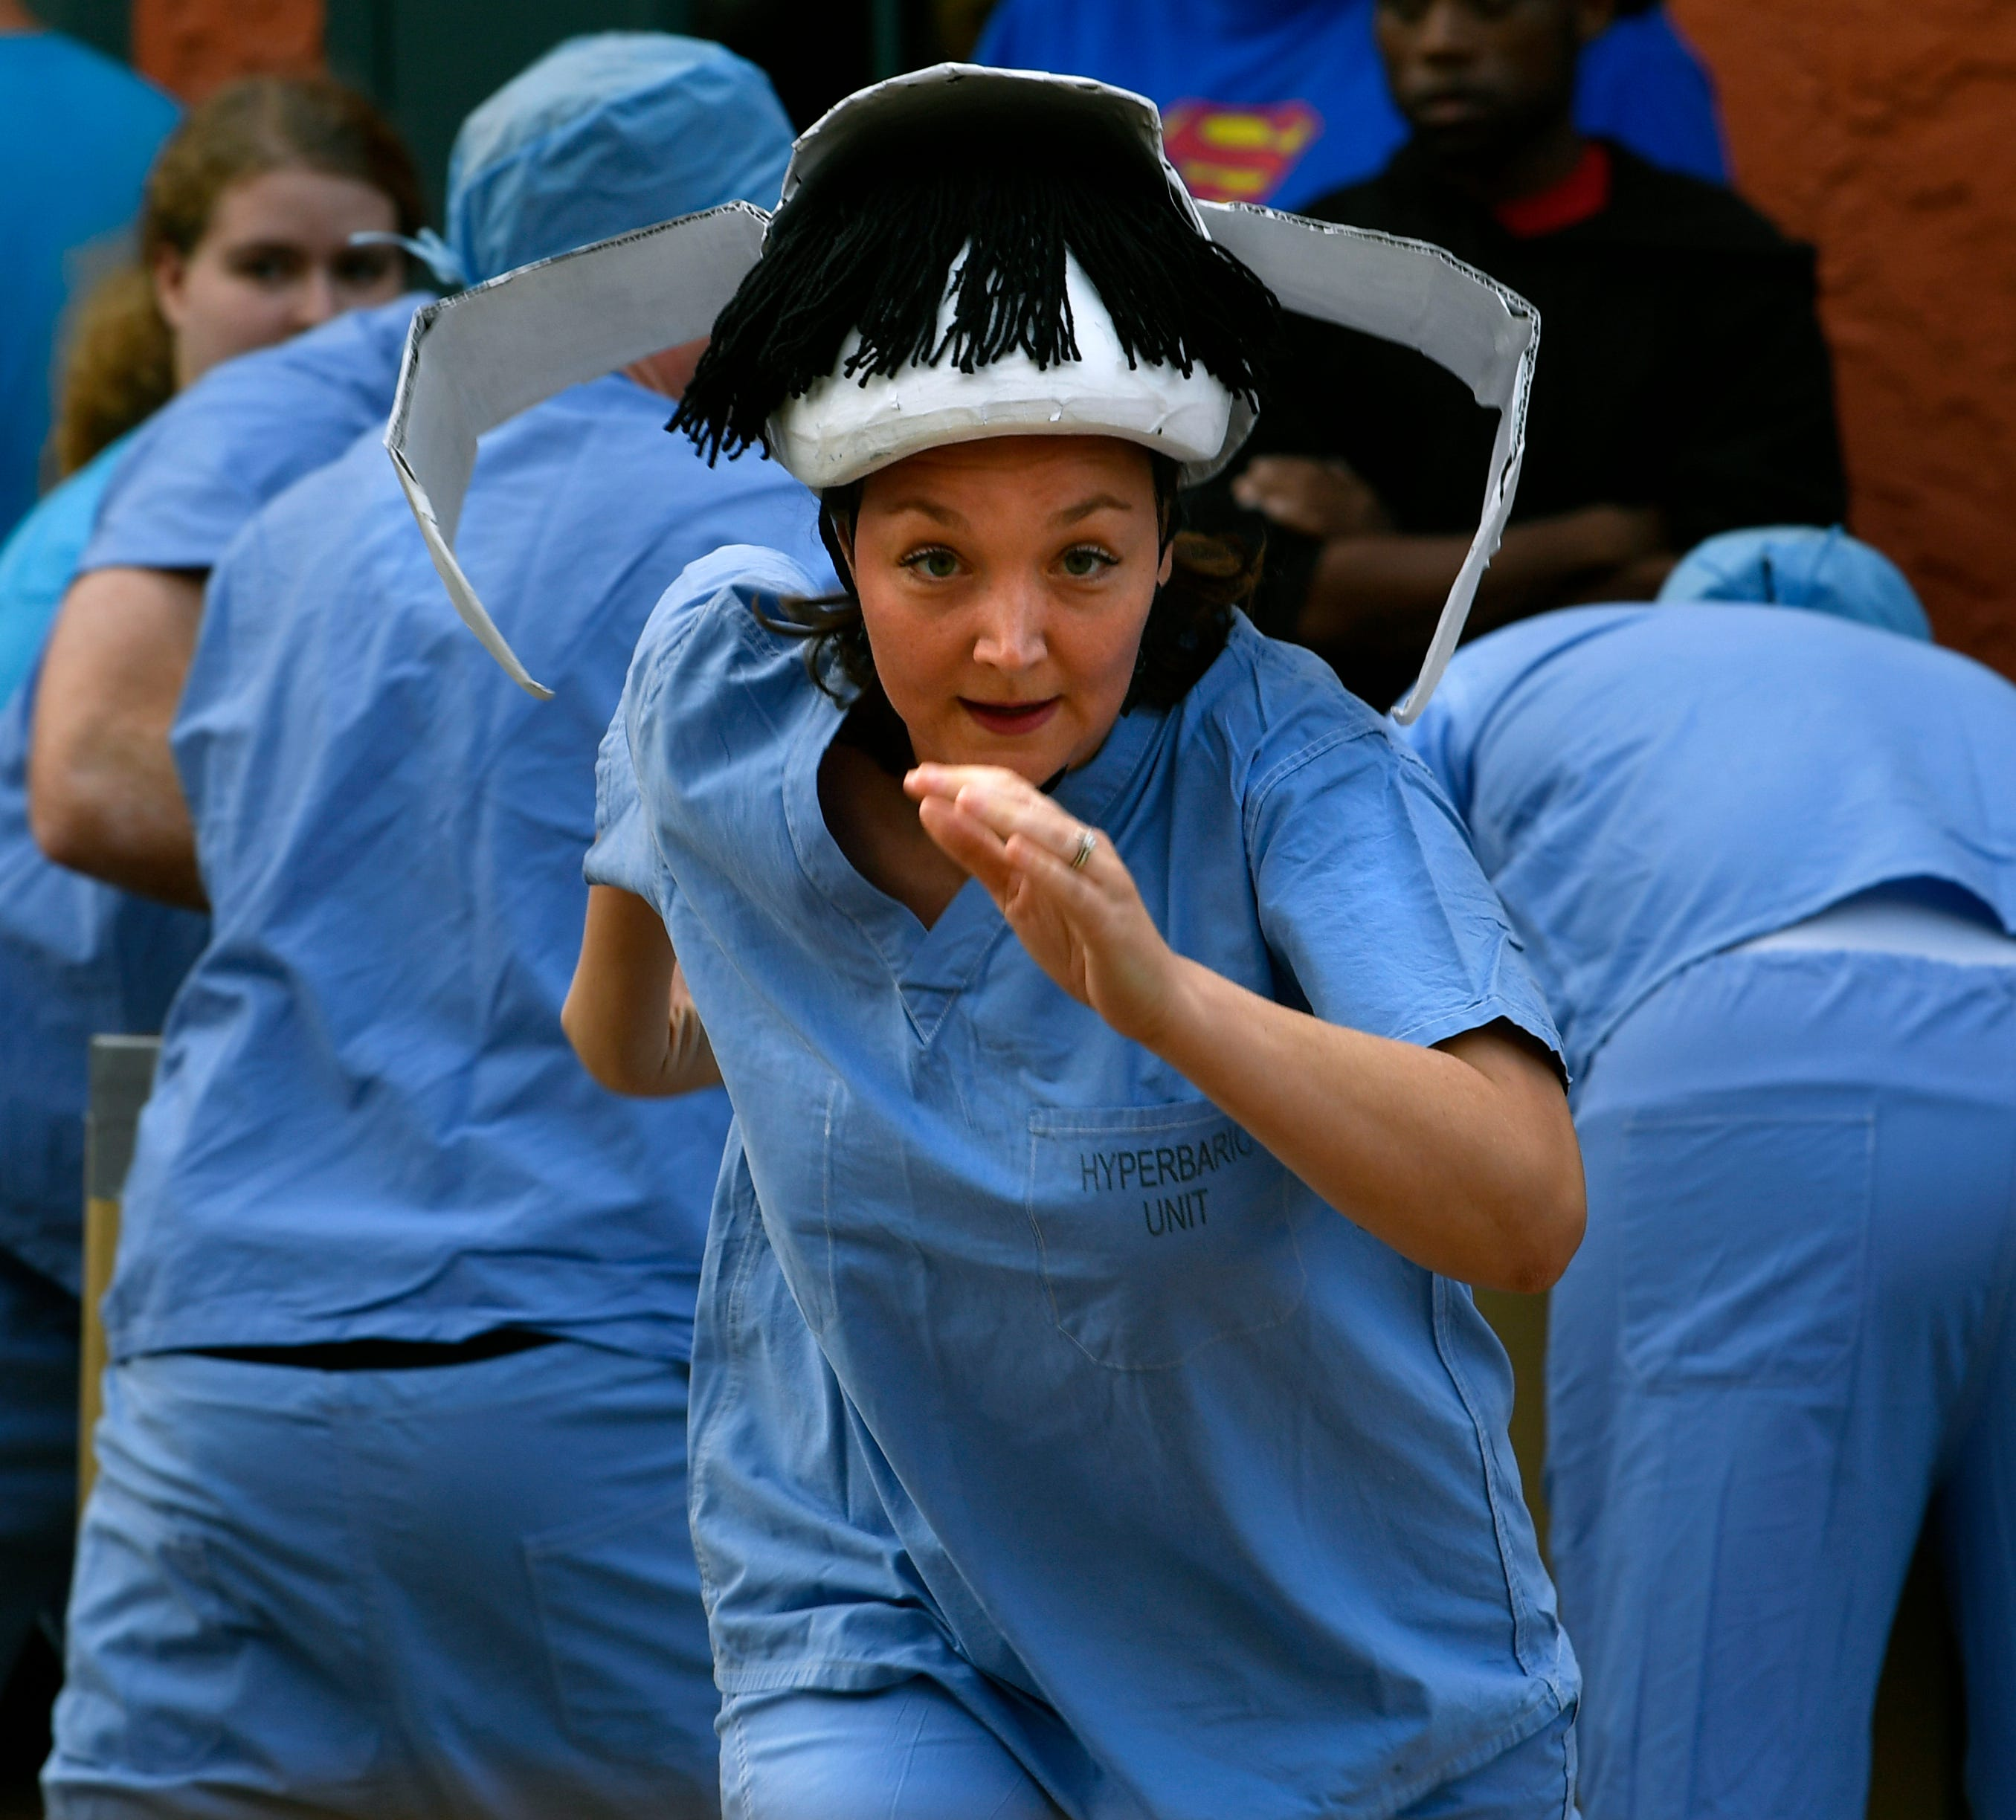 Mary Horban runs to the gurney that will carry her as the rest of her team from Hendrick Medical Center finishes sorting boxes during The Great Gurney Race Thursday during ArtWalk.